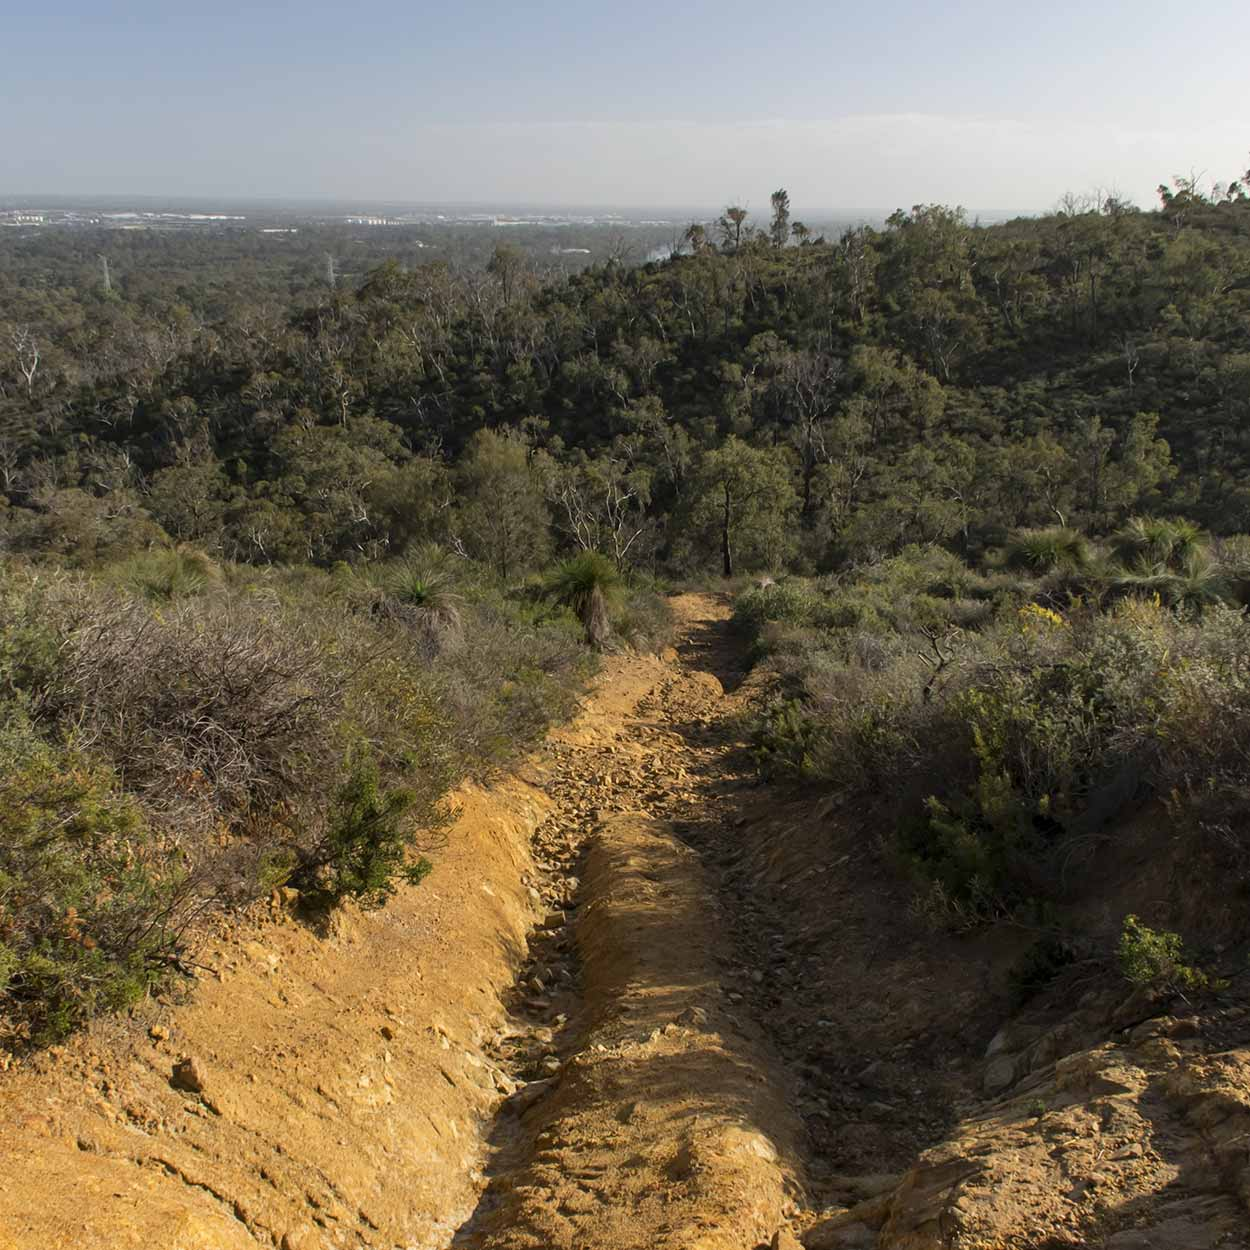 Eroded path, Lion's Lookout, Perth, Western Australia